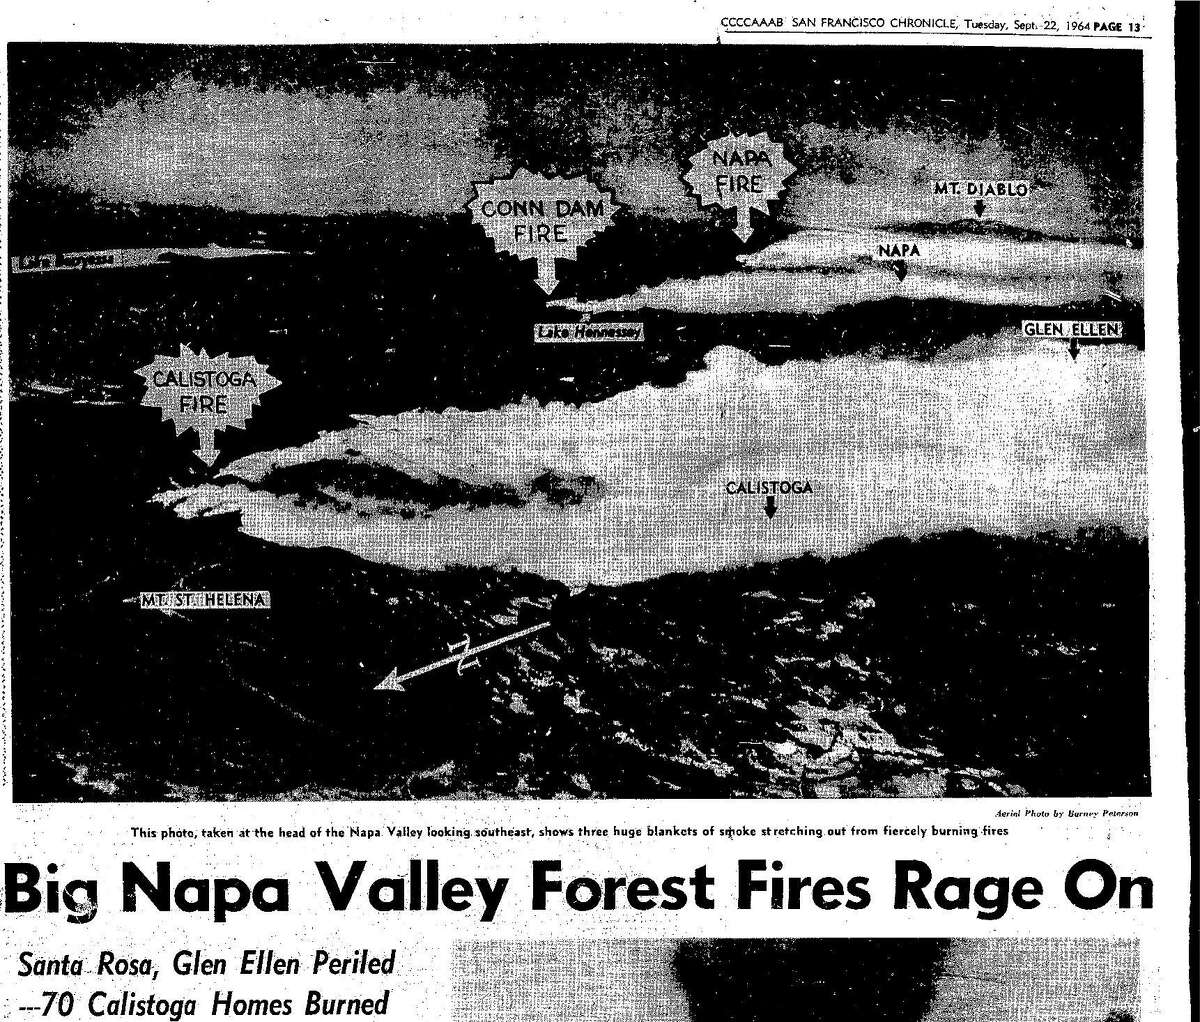 September 22, 1964 Chronicle map shows how widespread the Hanley Fire was, as several large brushfires swept through different parts of the Wine Country, eventually spreading to 5 counties.